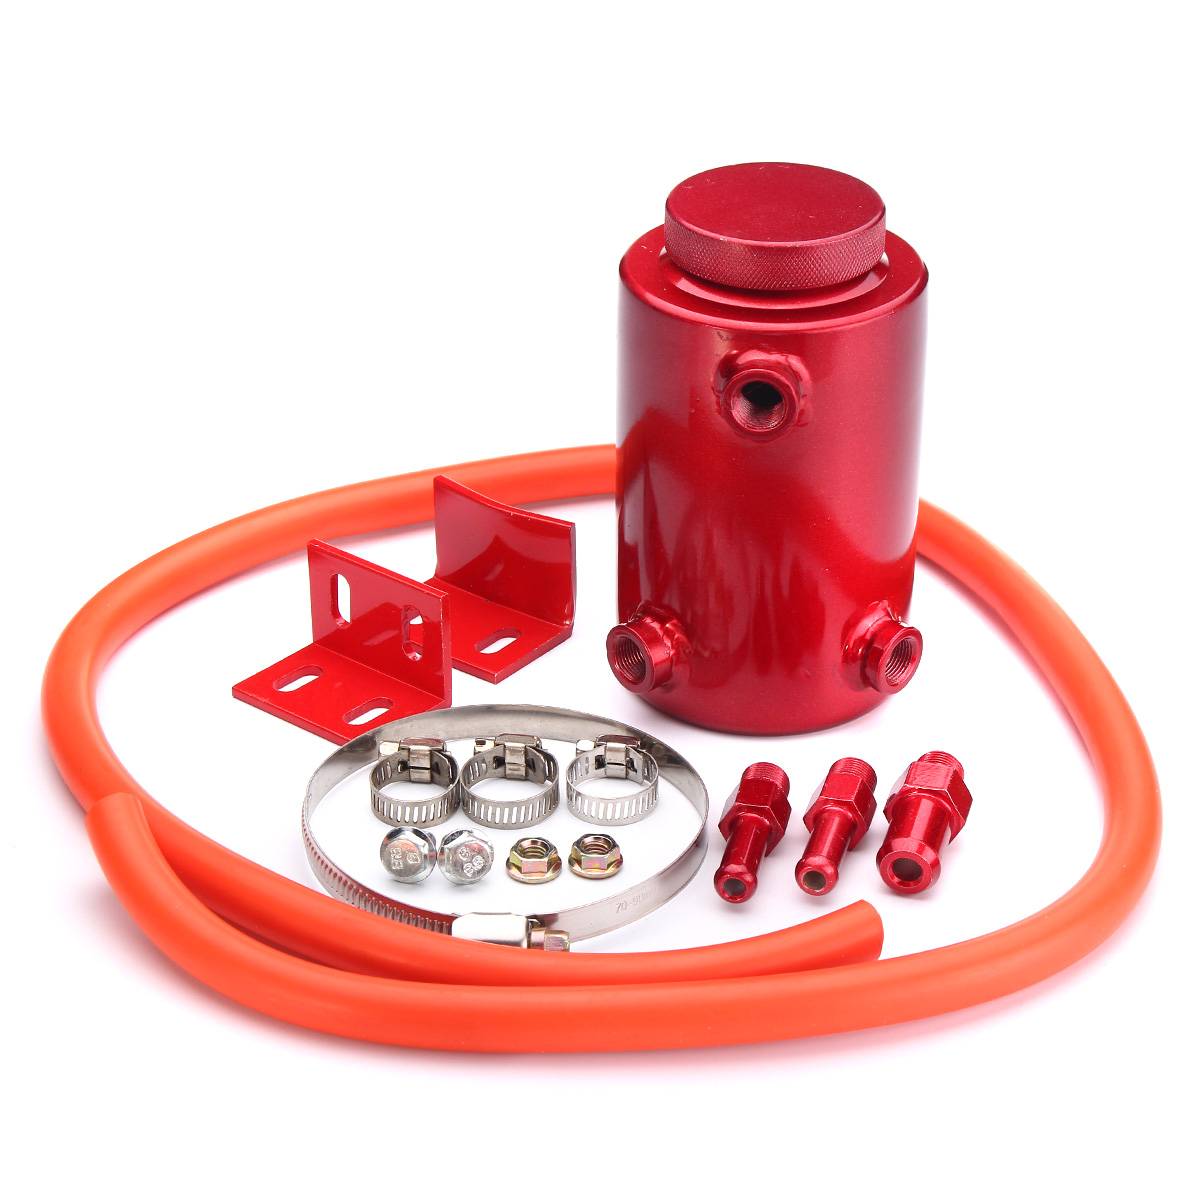 Aluminum Engine Oil Reservoir Catch Can Tank Kit Breather Waste Oil Recycling Can Red Black